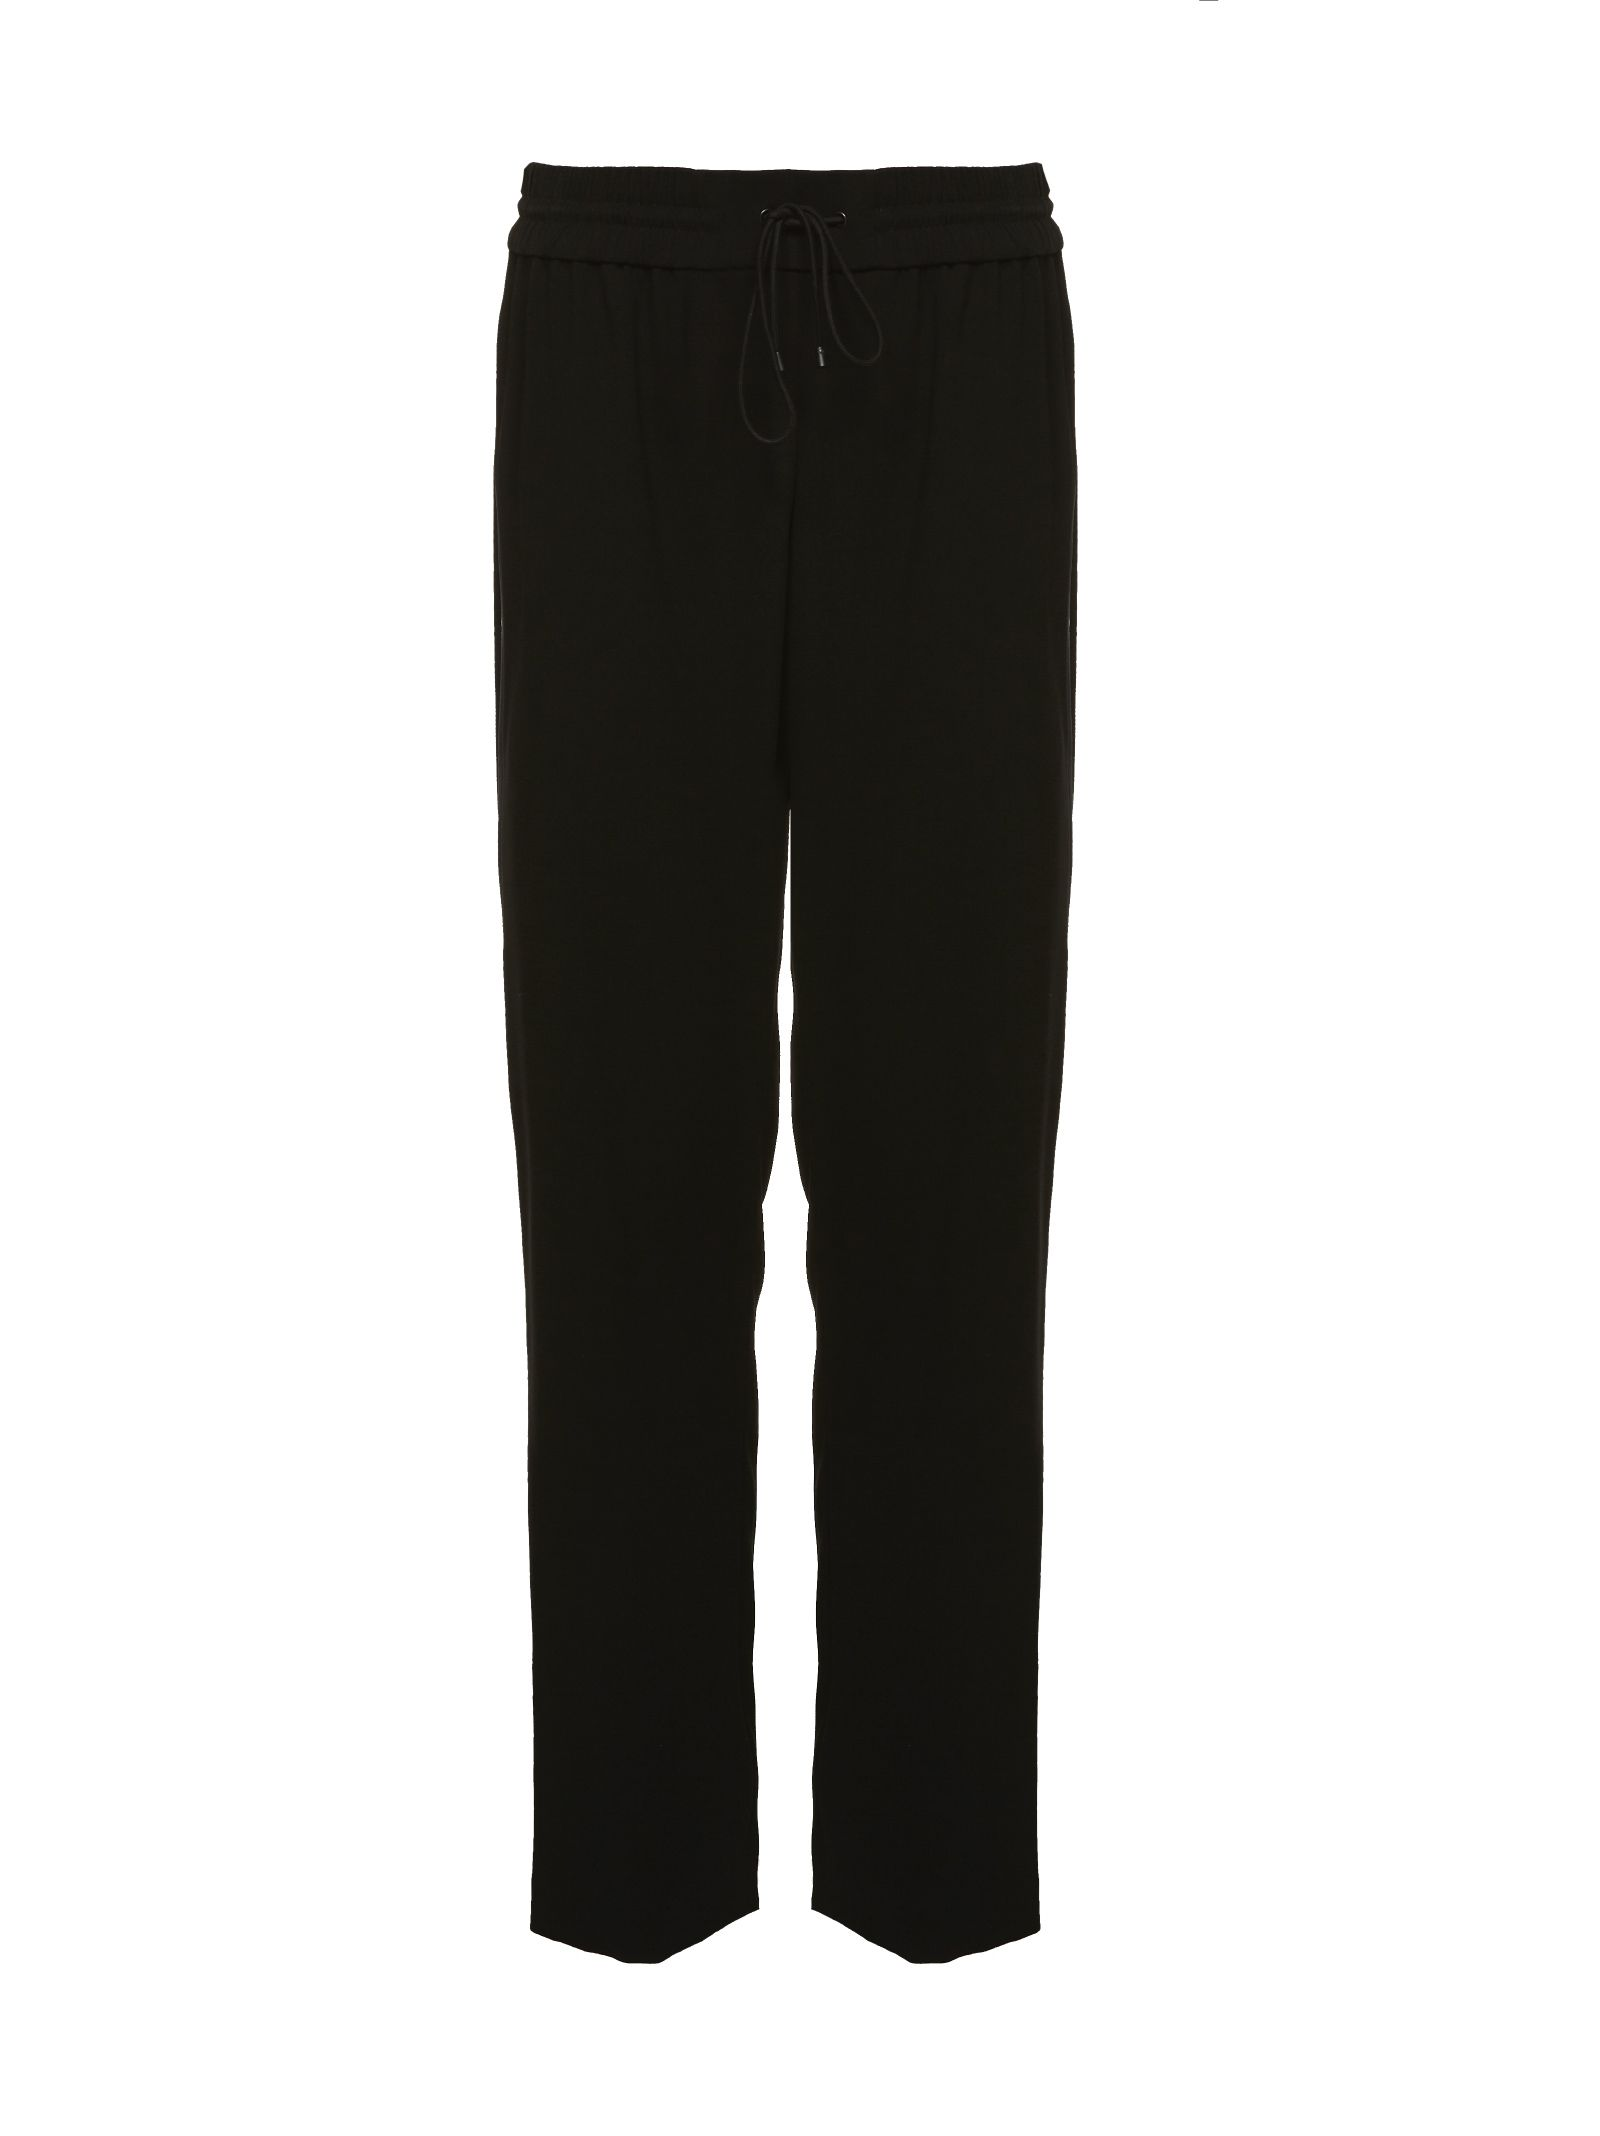 Kenzo Striped Trousers